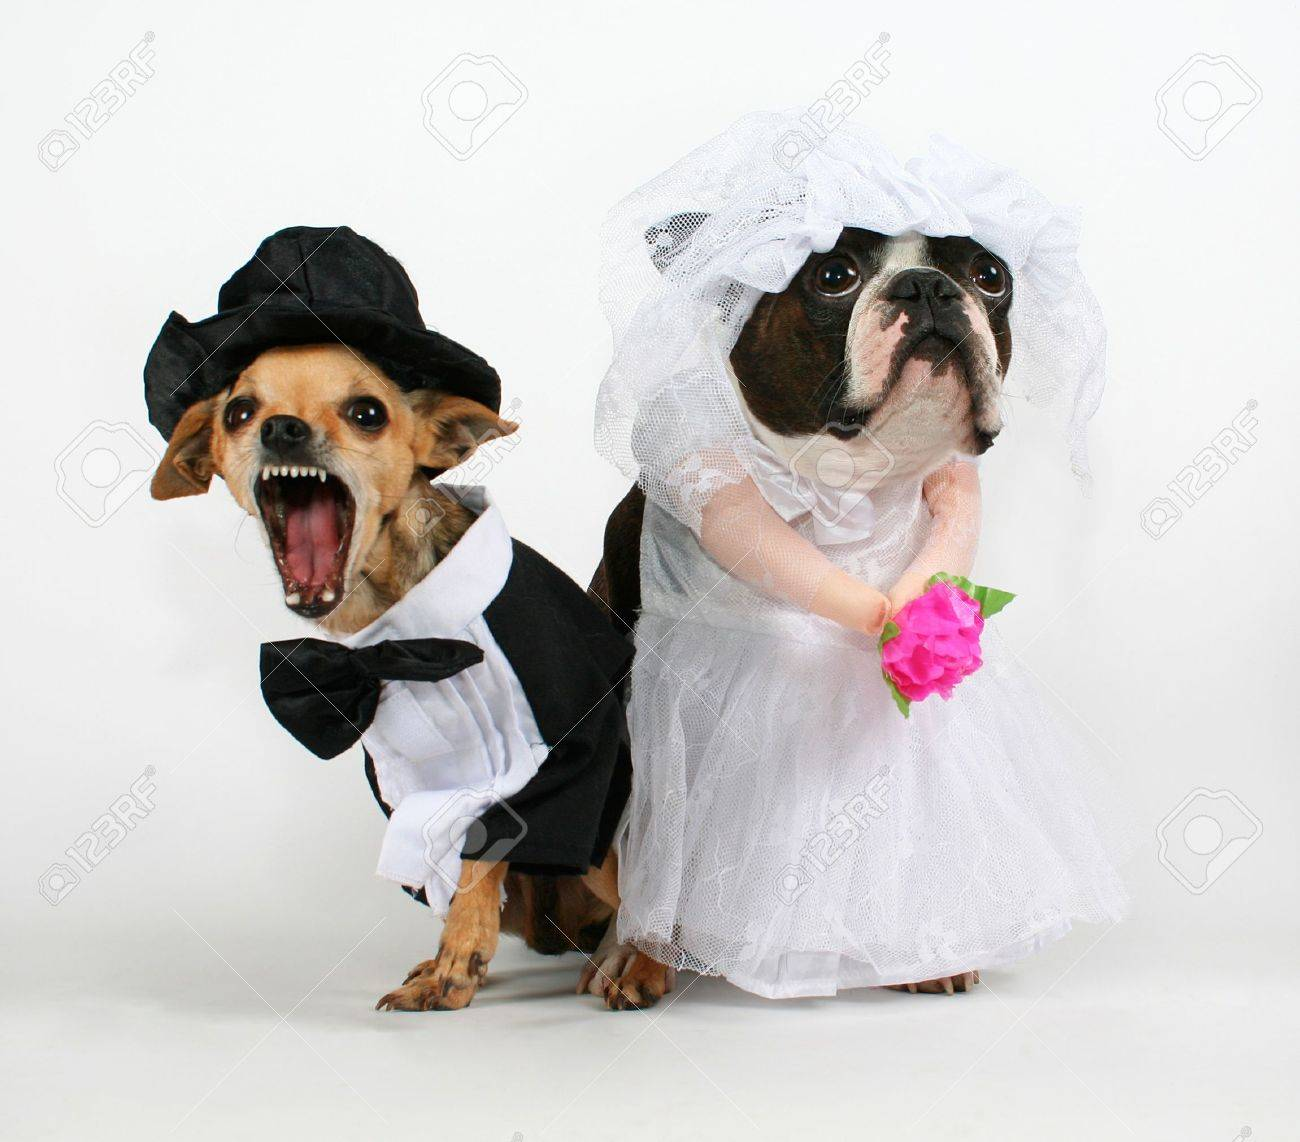 Two Dogs In Wedding Attire Looking Upset Stock Photo, Picture And ...